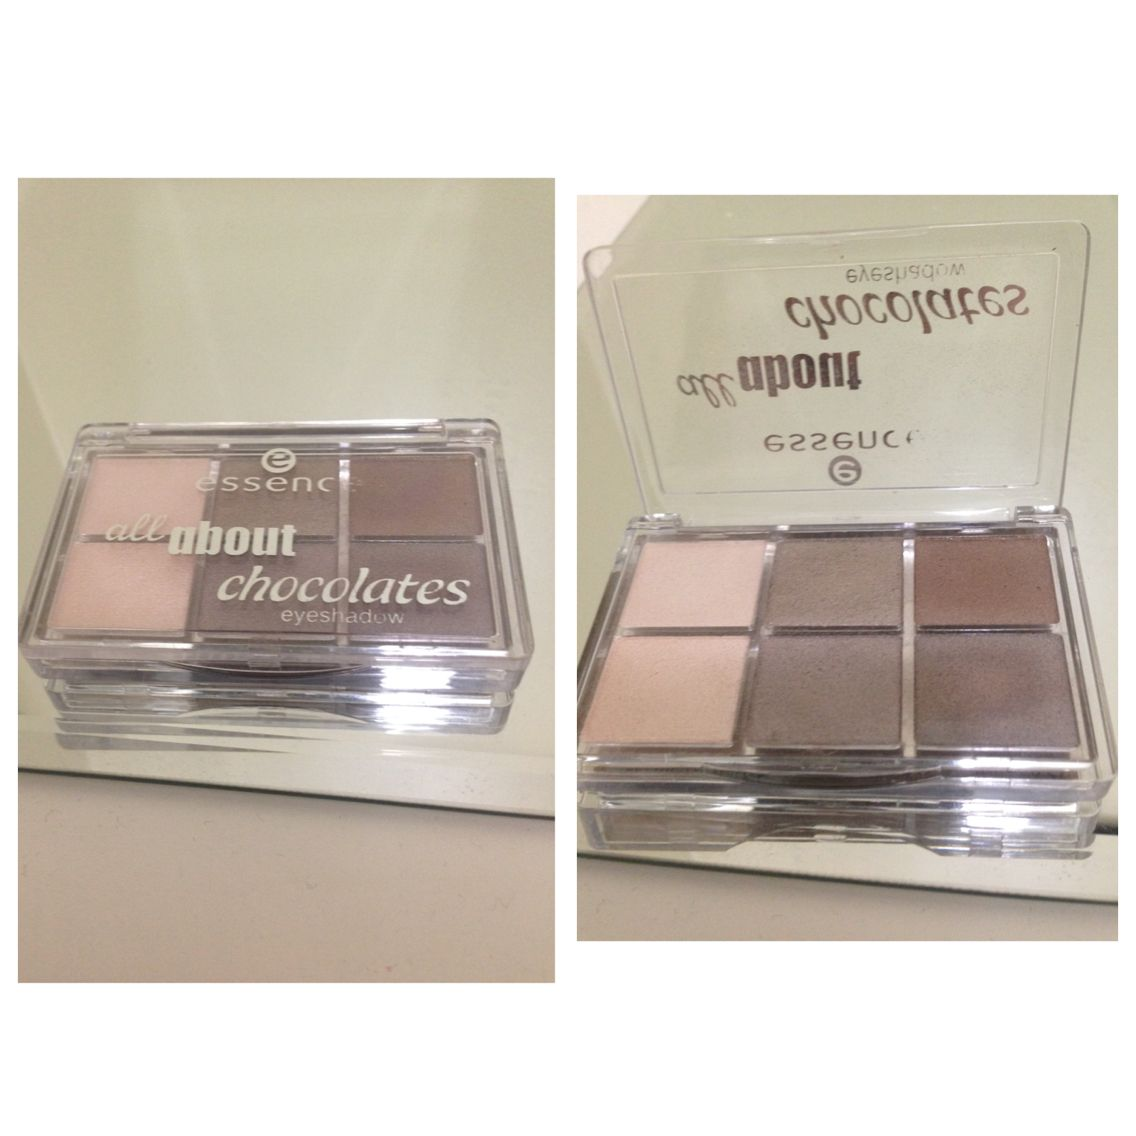 All about chocolate eyeshadow palette from essence cosmetics